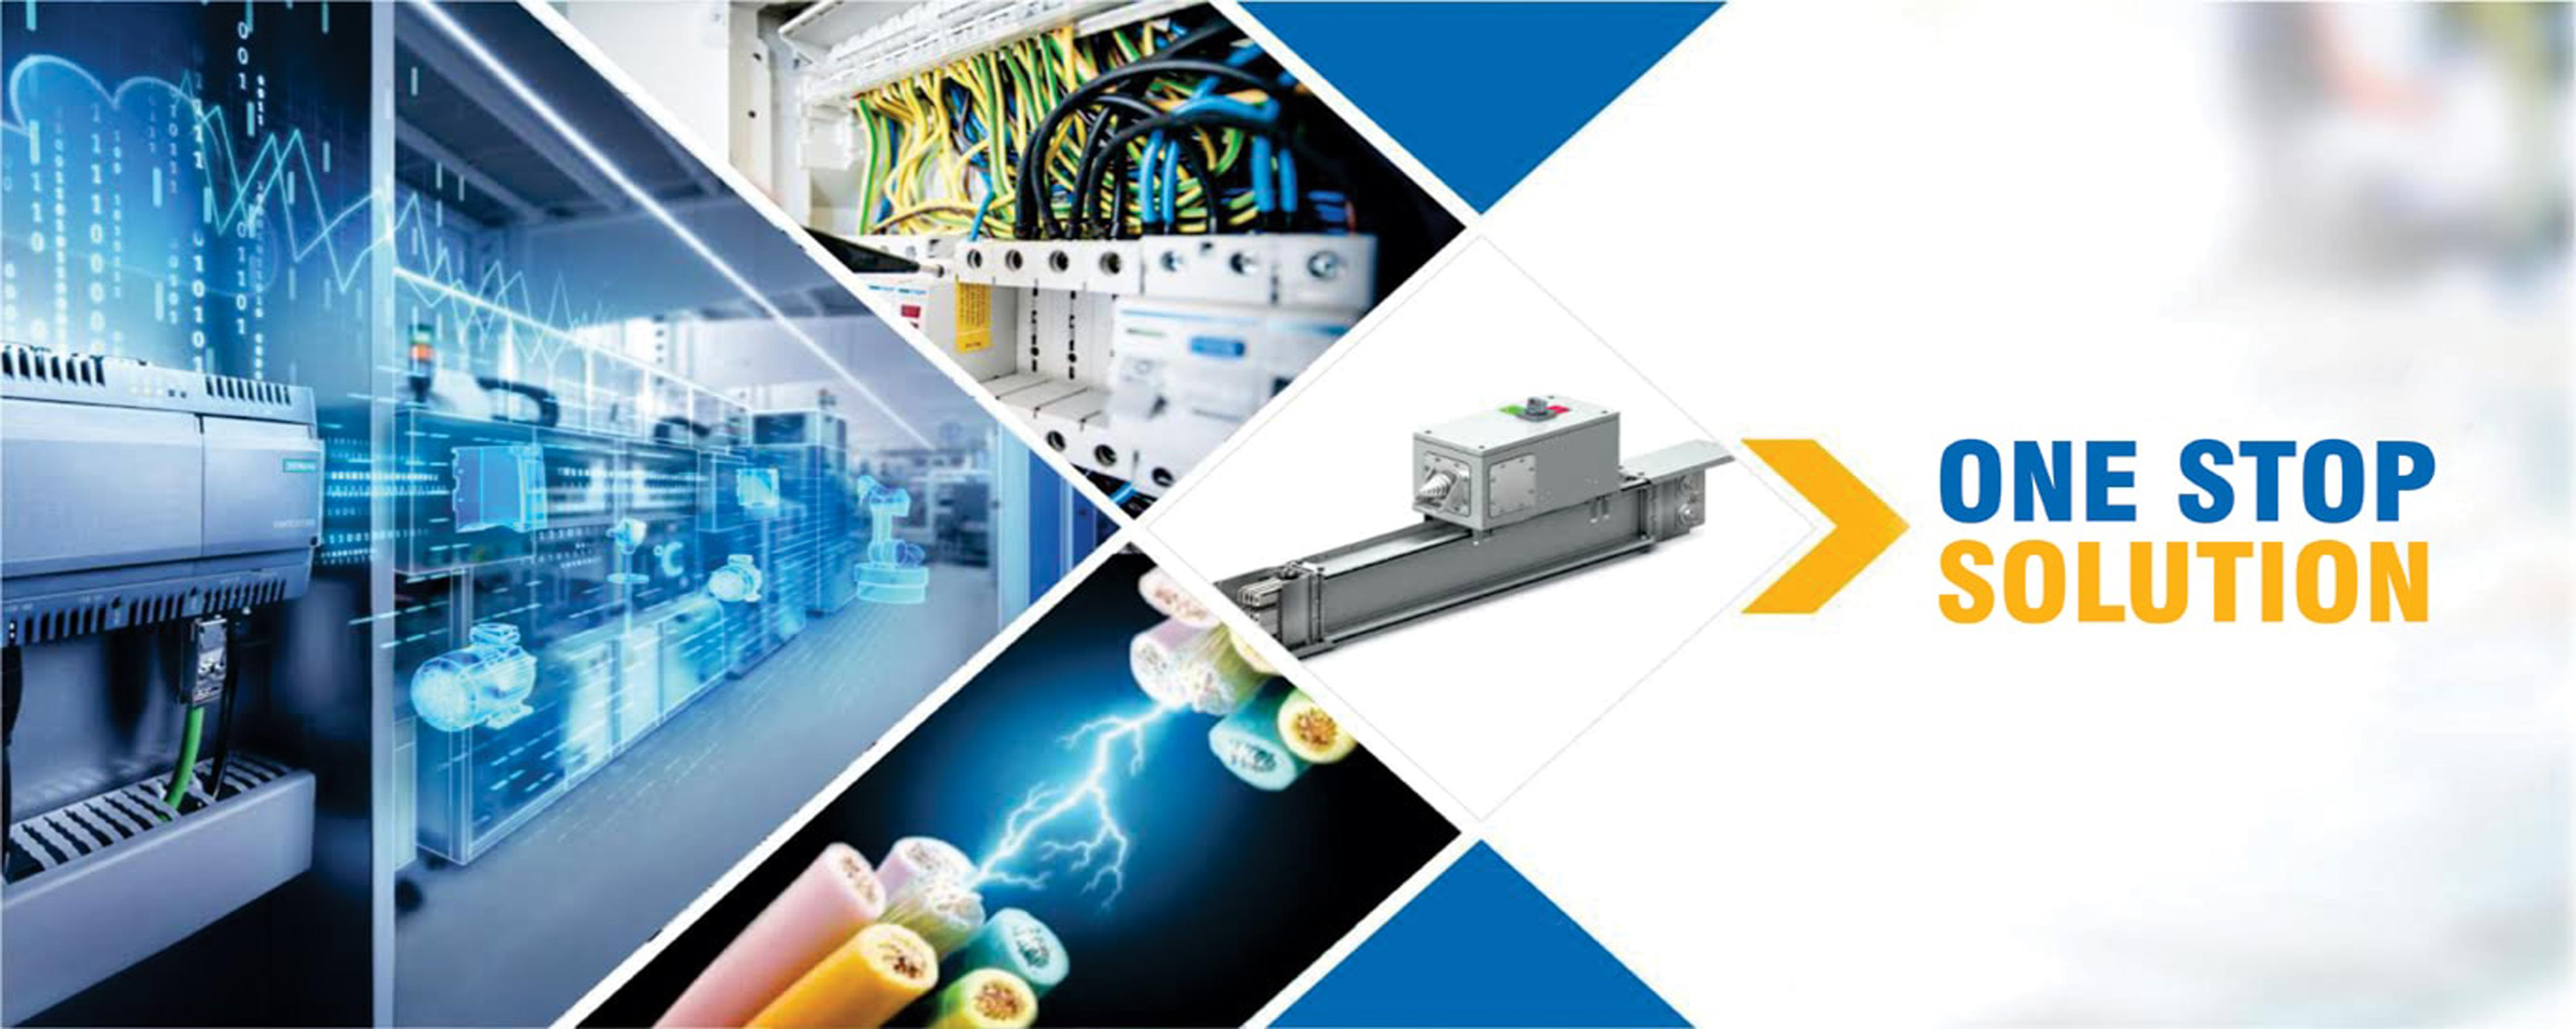 One Stop Solution For Electrical & Automation